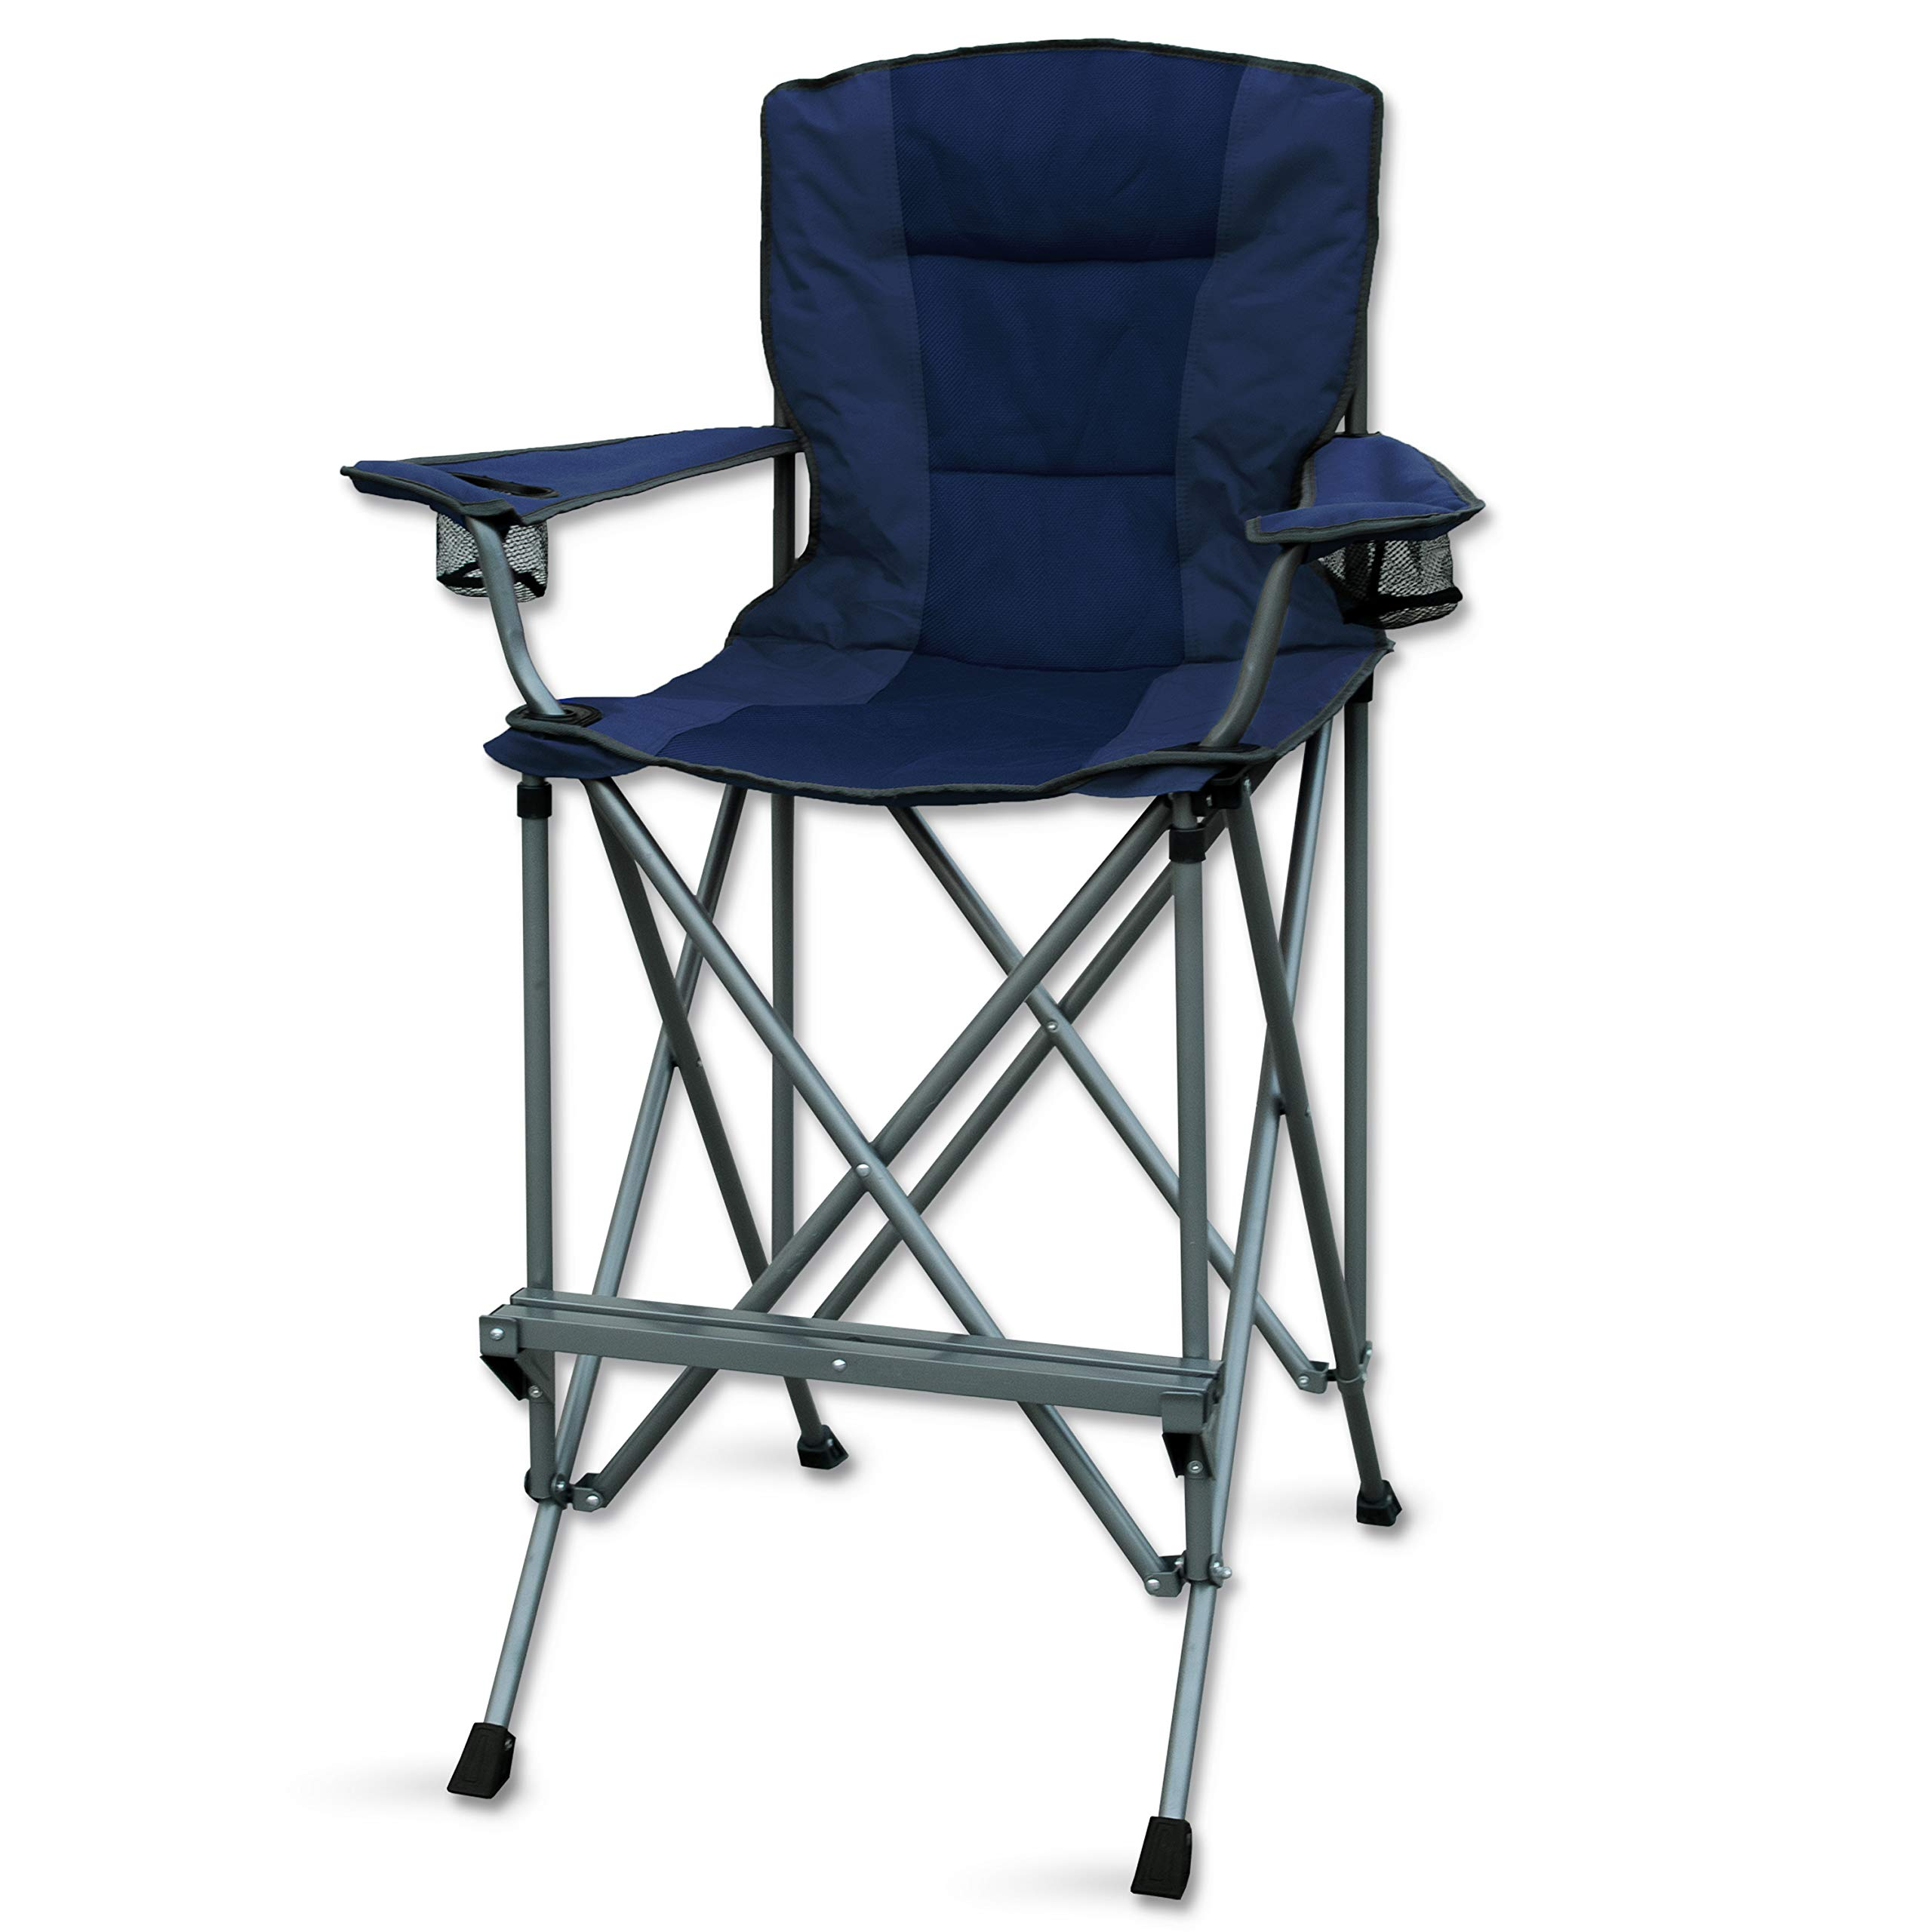 RMS Outdoors Extra Tall Folding Chair - Bar Height Director Chair for Camping, Home Patio and Sports - Portable and Collapsible with Footrest and Carrying Bag - Up to 300 lbs Weight Capacity (Blue) by RMS Royal Medical Solutions, Inc.